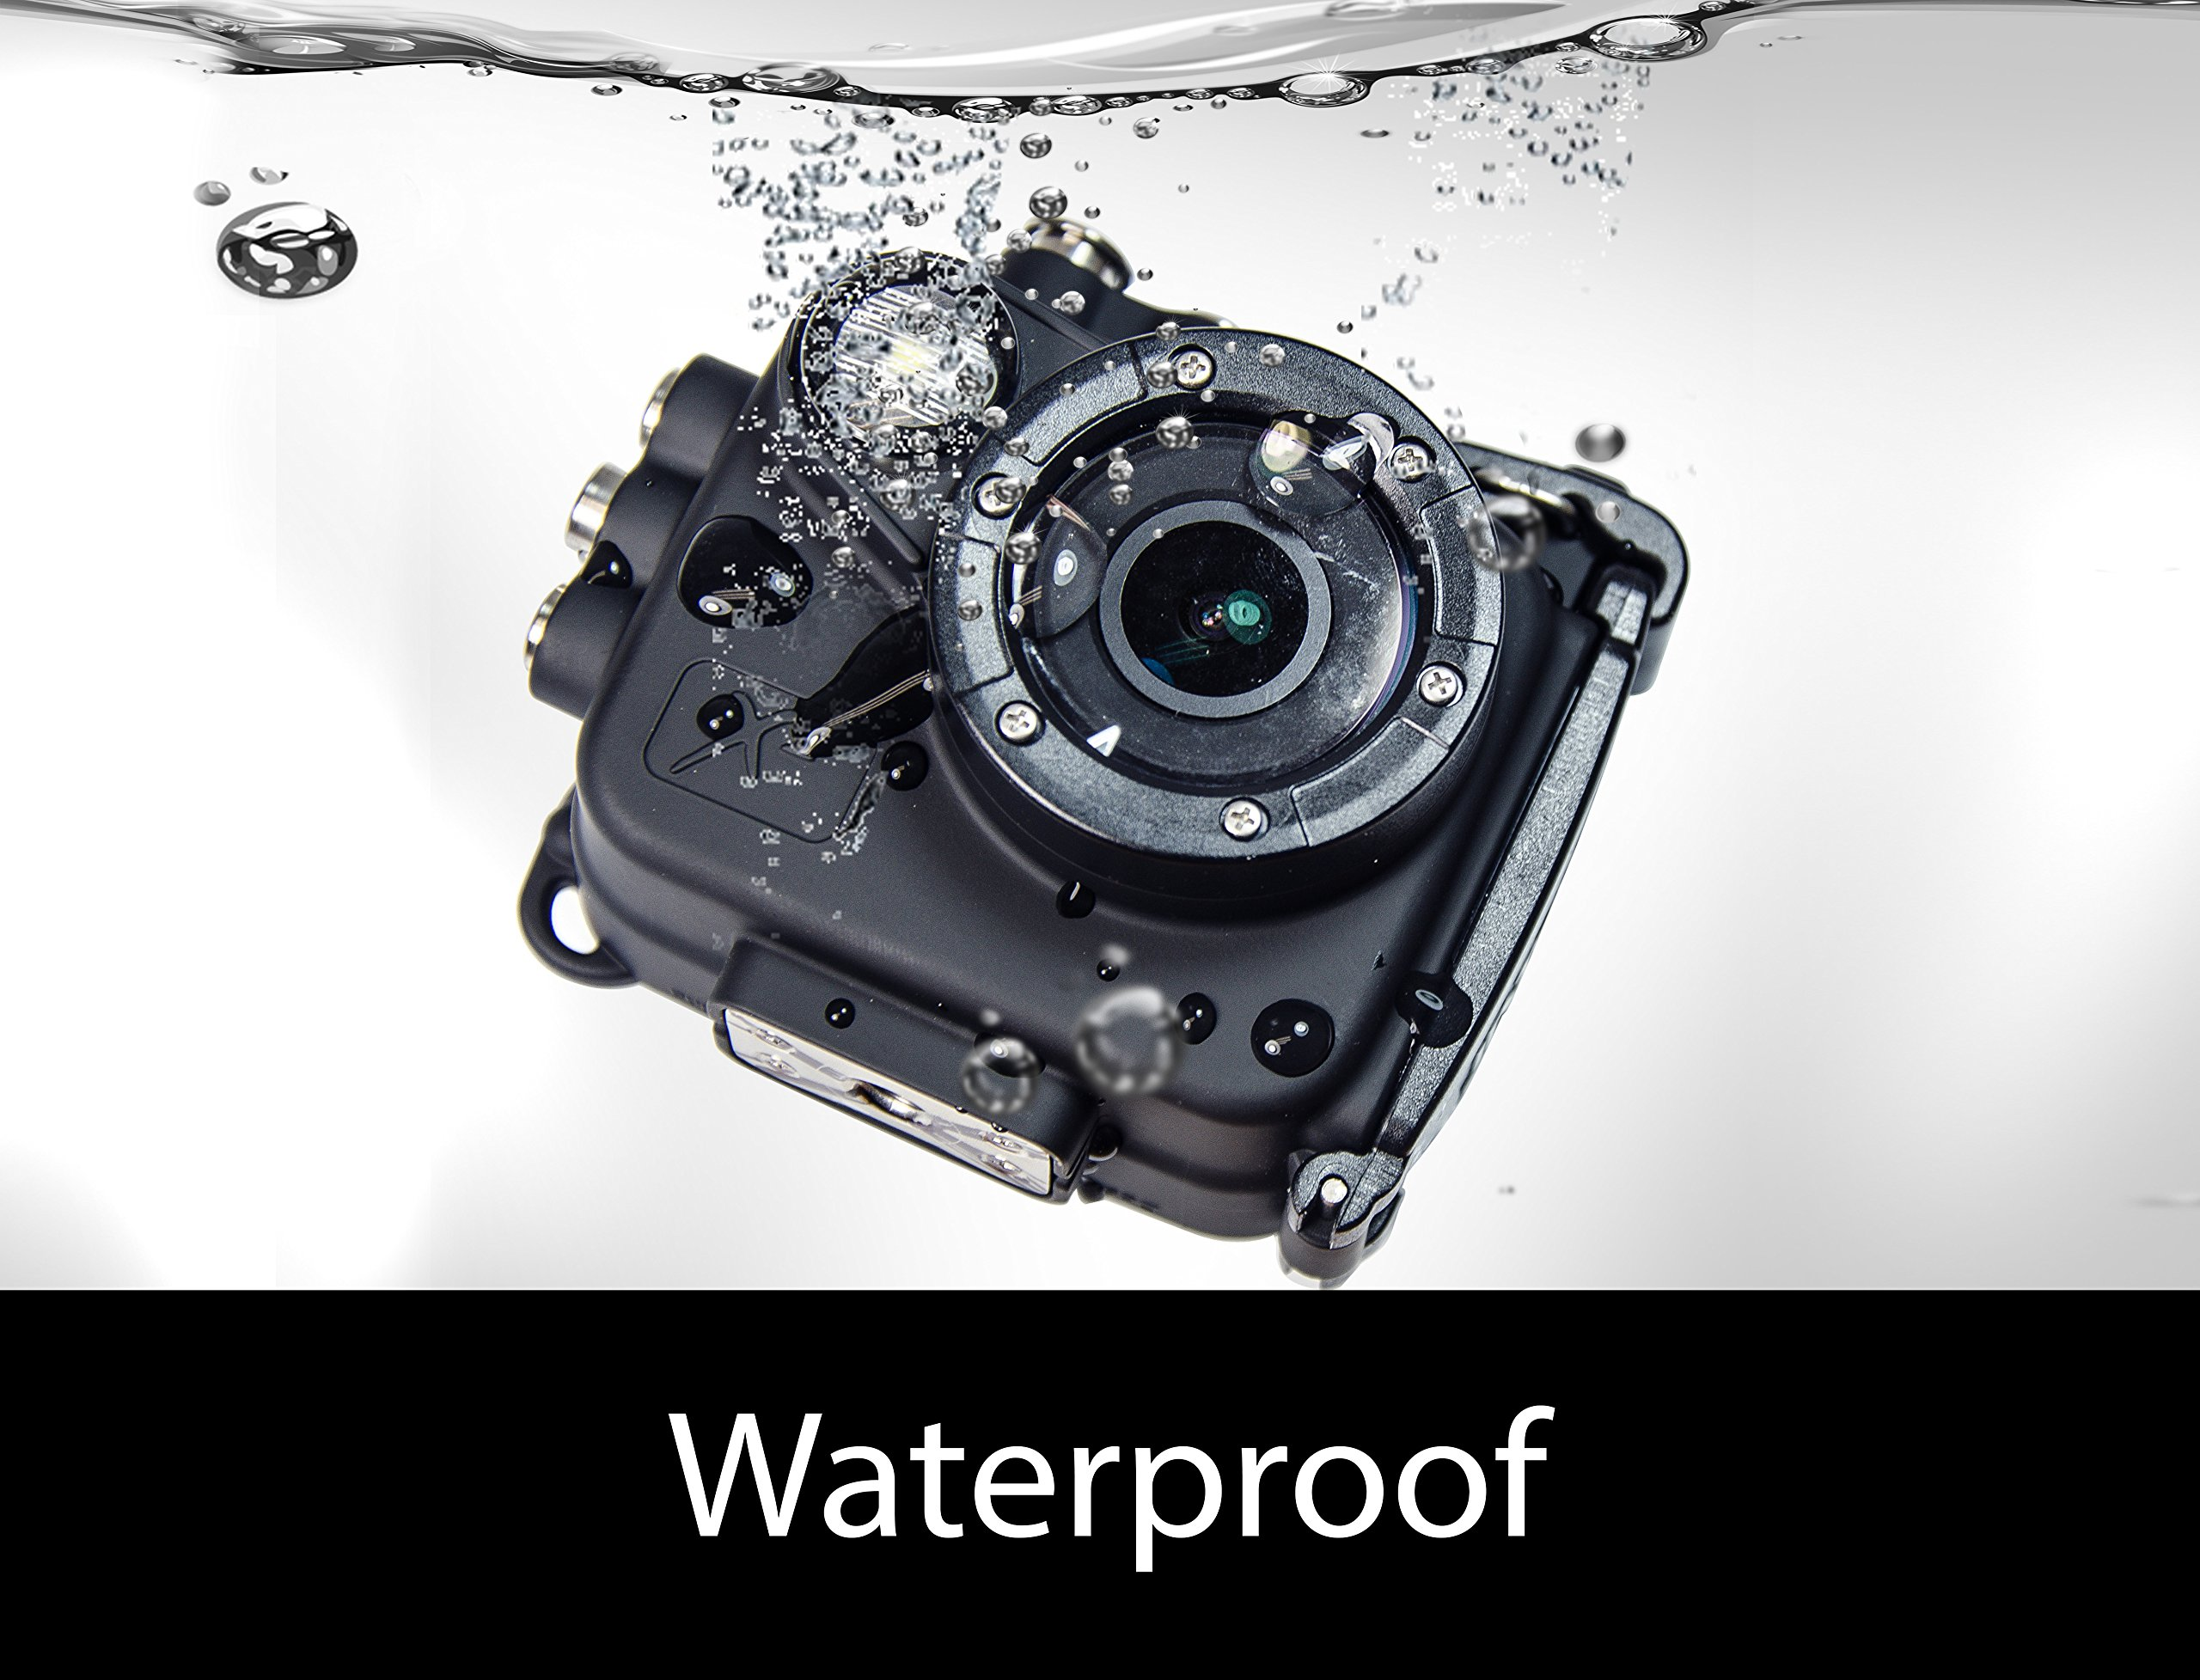 Intova X2 Waterproof 16MP Action Camera with Built-in 150-Lumen Light and WiFi by Intova (Image #2)